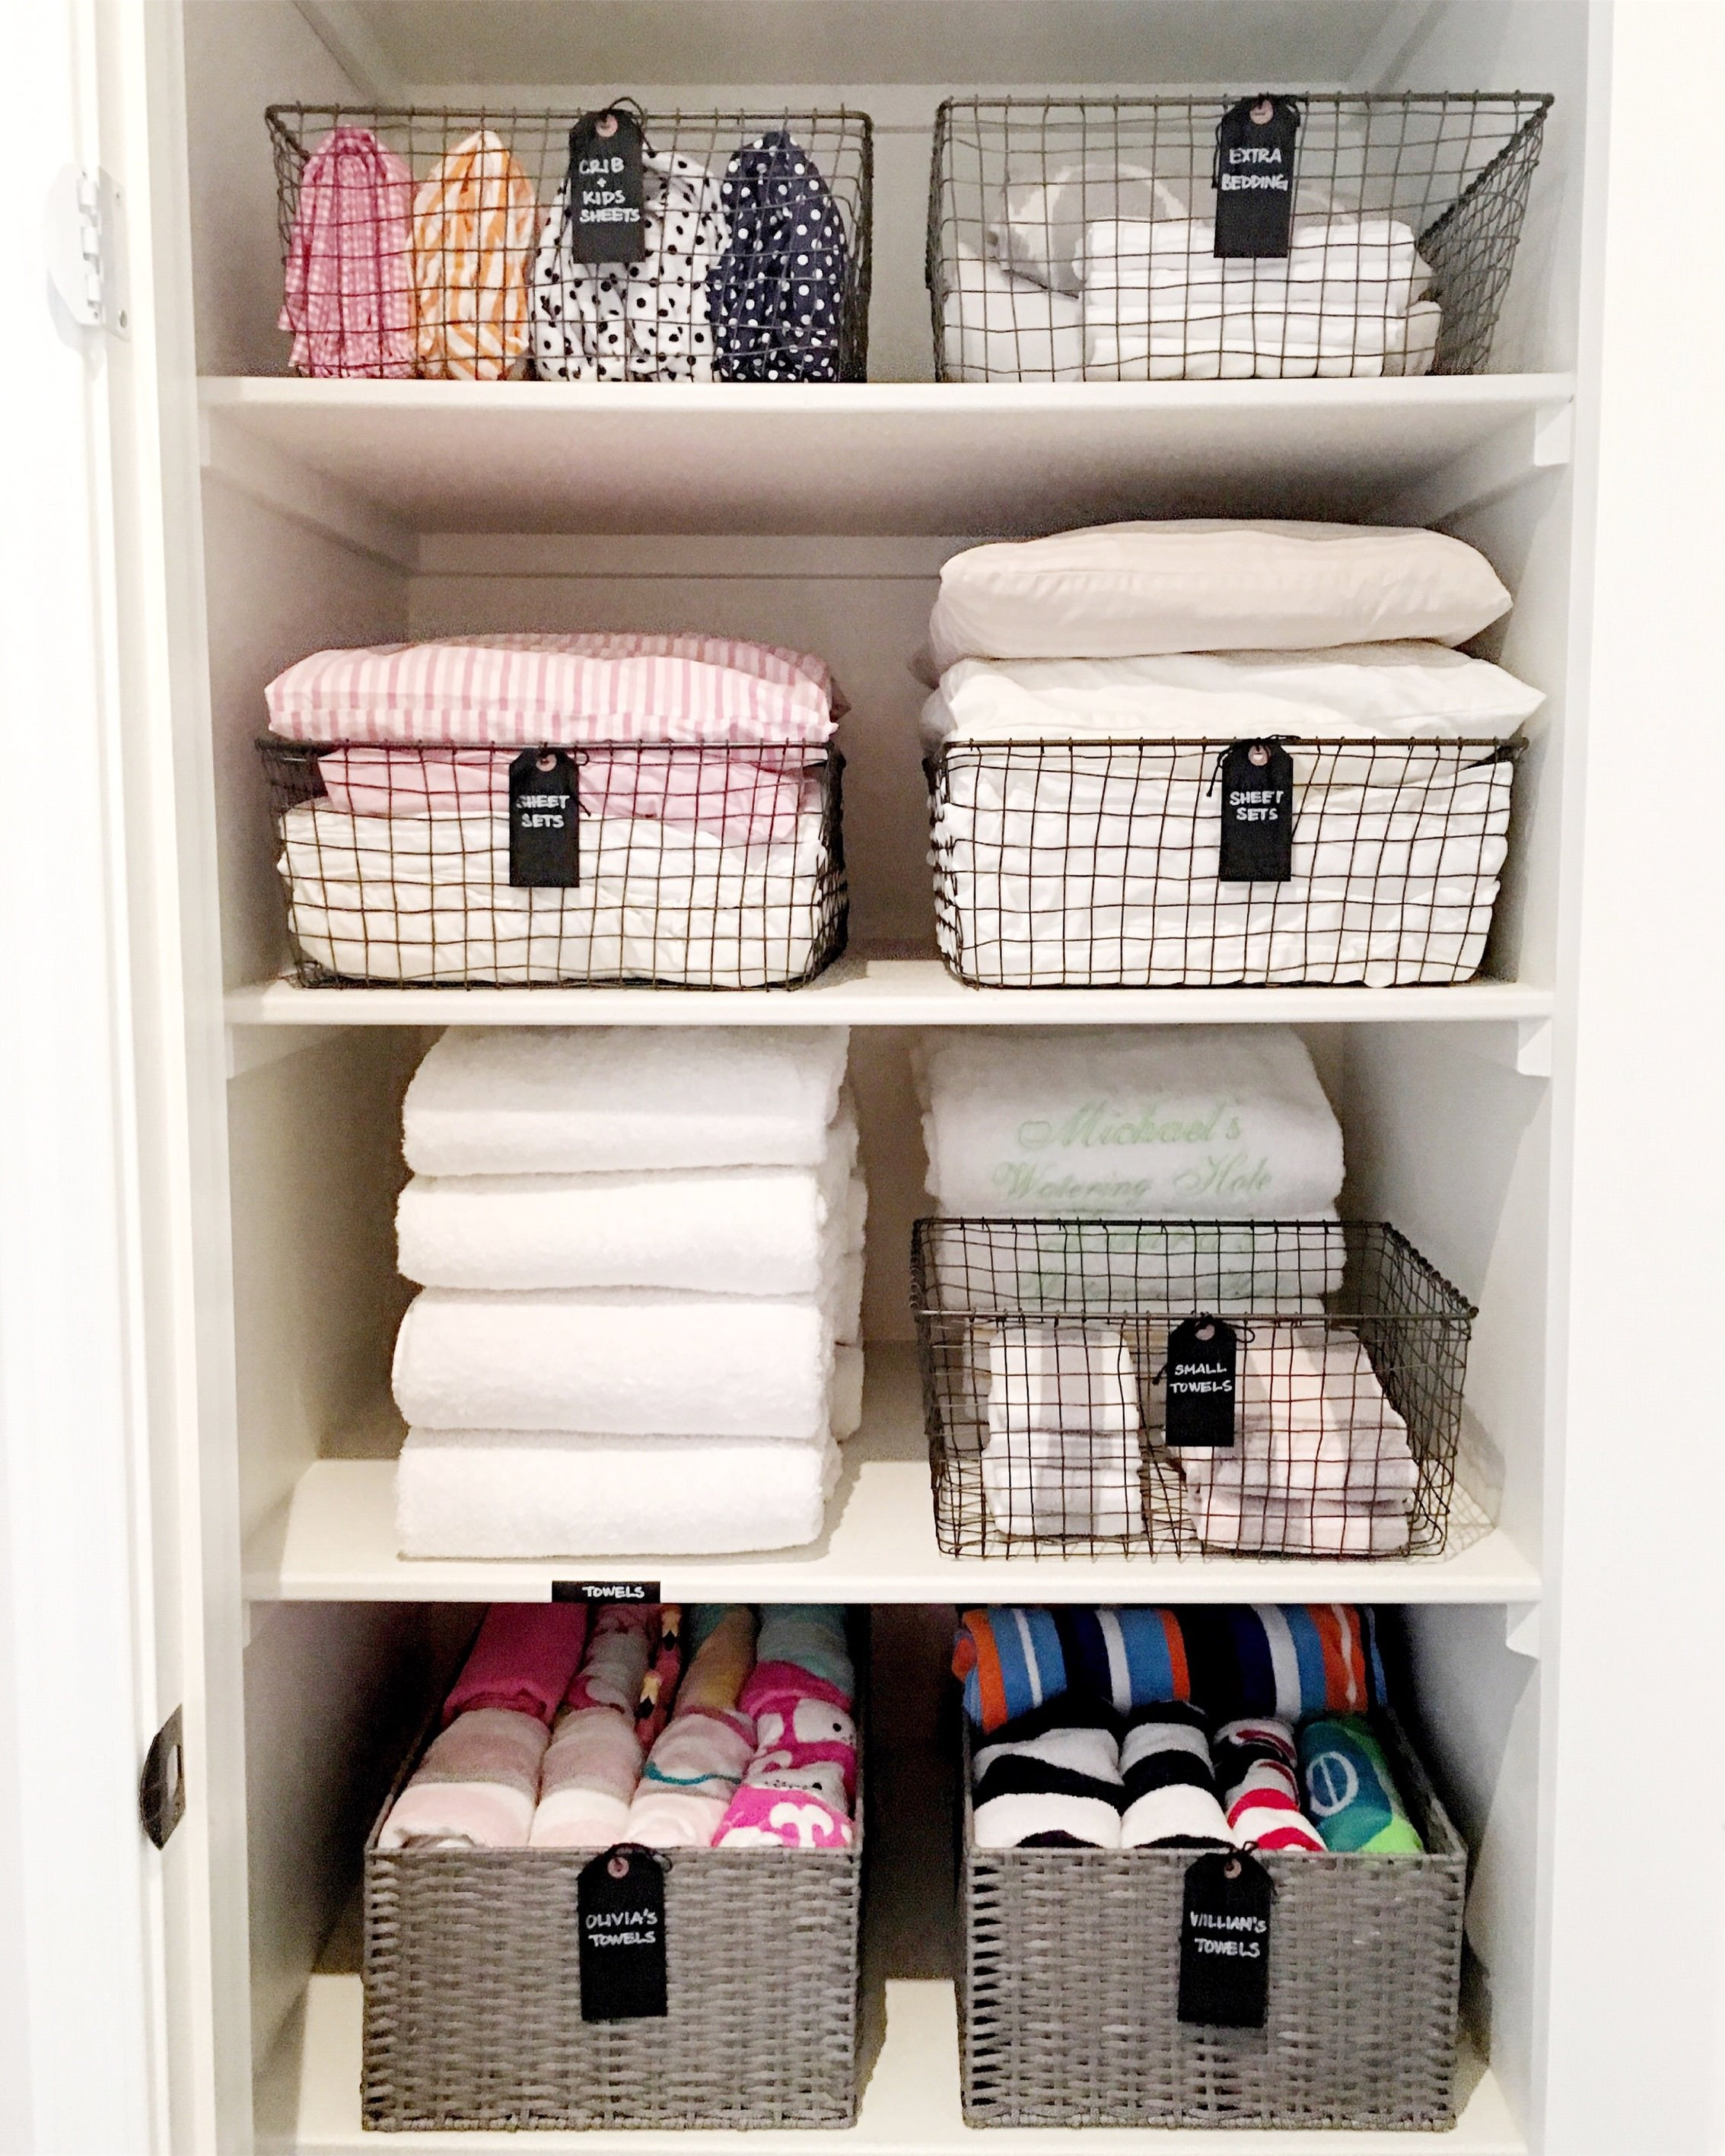 bathroom organization, bathroom organizing, bathroom inspiration, design ideas, design inspiration, neat spaces, linen closets, linen organization, baskets